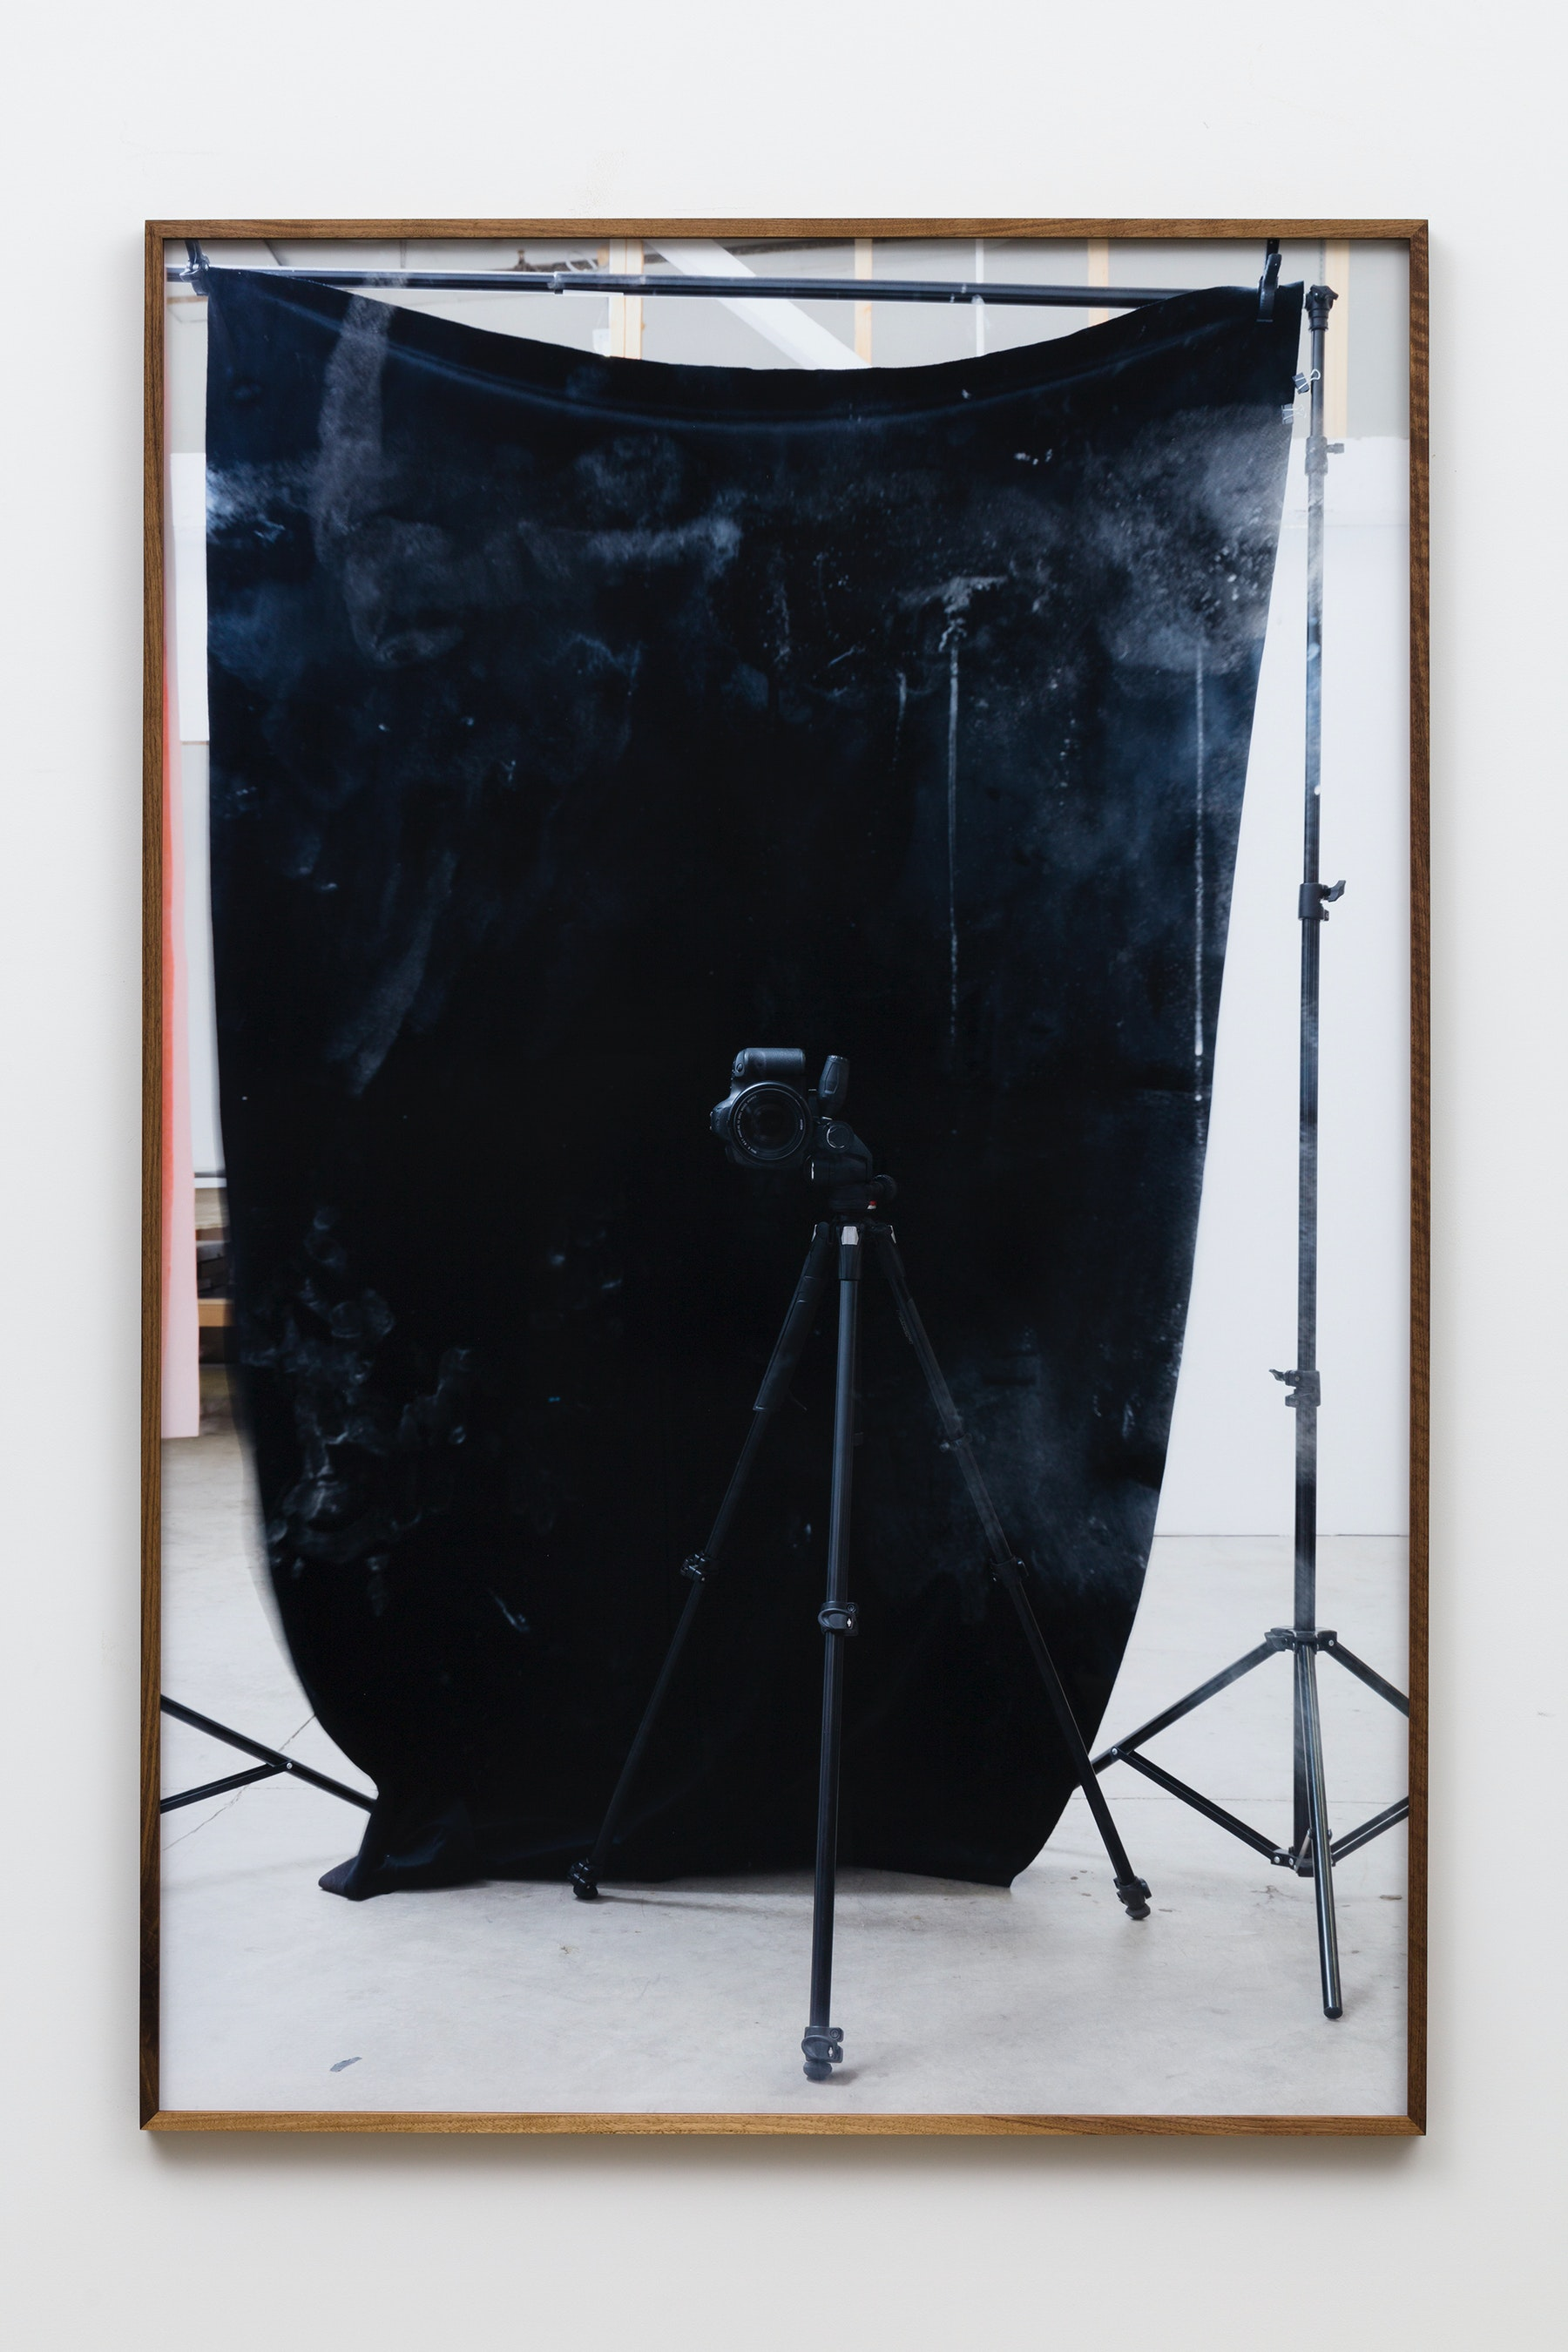 """Paul Mpagi Sepuya """"Drop Scene (0X5A1916),"""" 2019 Archival pigment print 75 x 50"""" [HxW] (190.5 x 127 cm) Edition of 5, 2 AP Inventory #SEP660 Courtesy of the artist and Vielmetter Los Angeles Photo credit: Jeff McLane"""